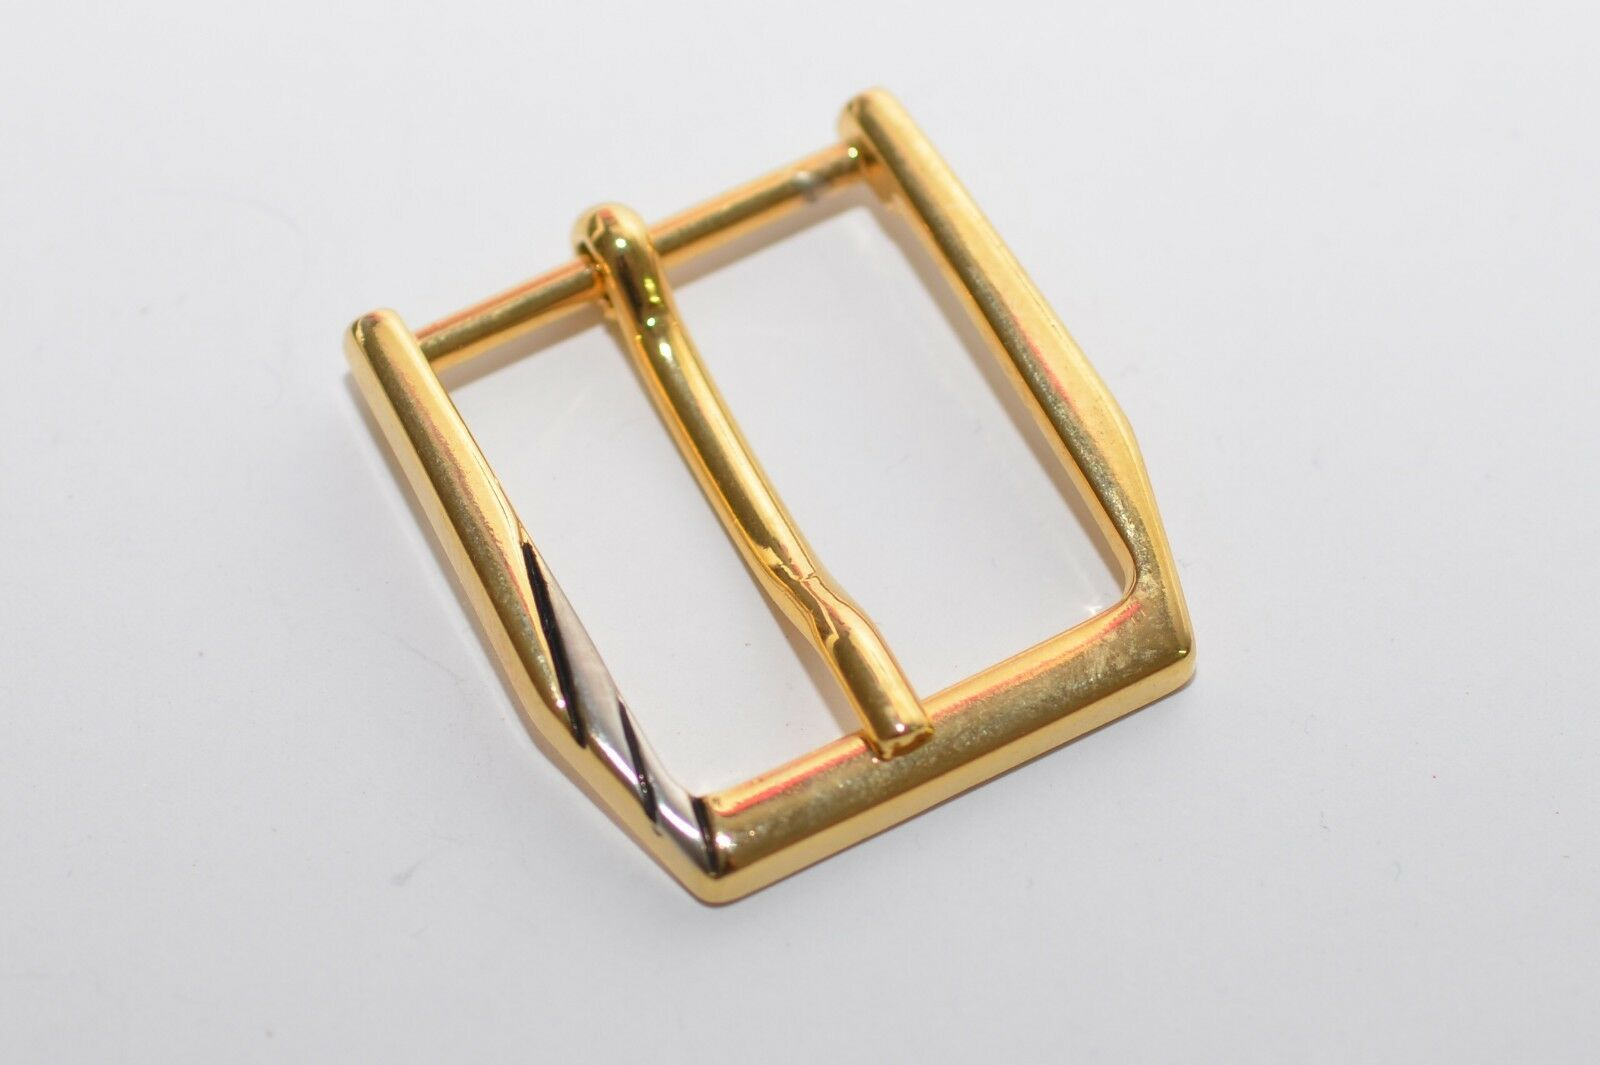 2x Solid Belt Buckle Clasp Buckle, Approx. 24 MM Width, Gold, 80er Years